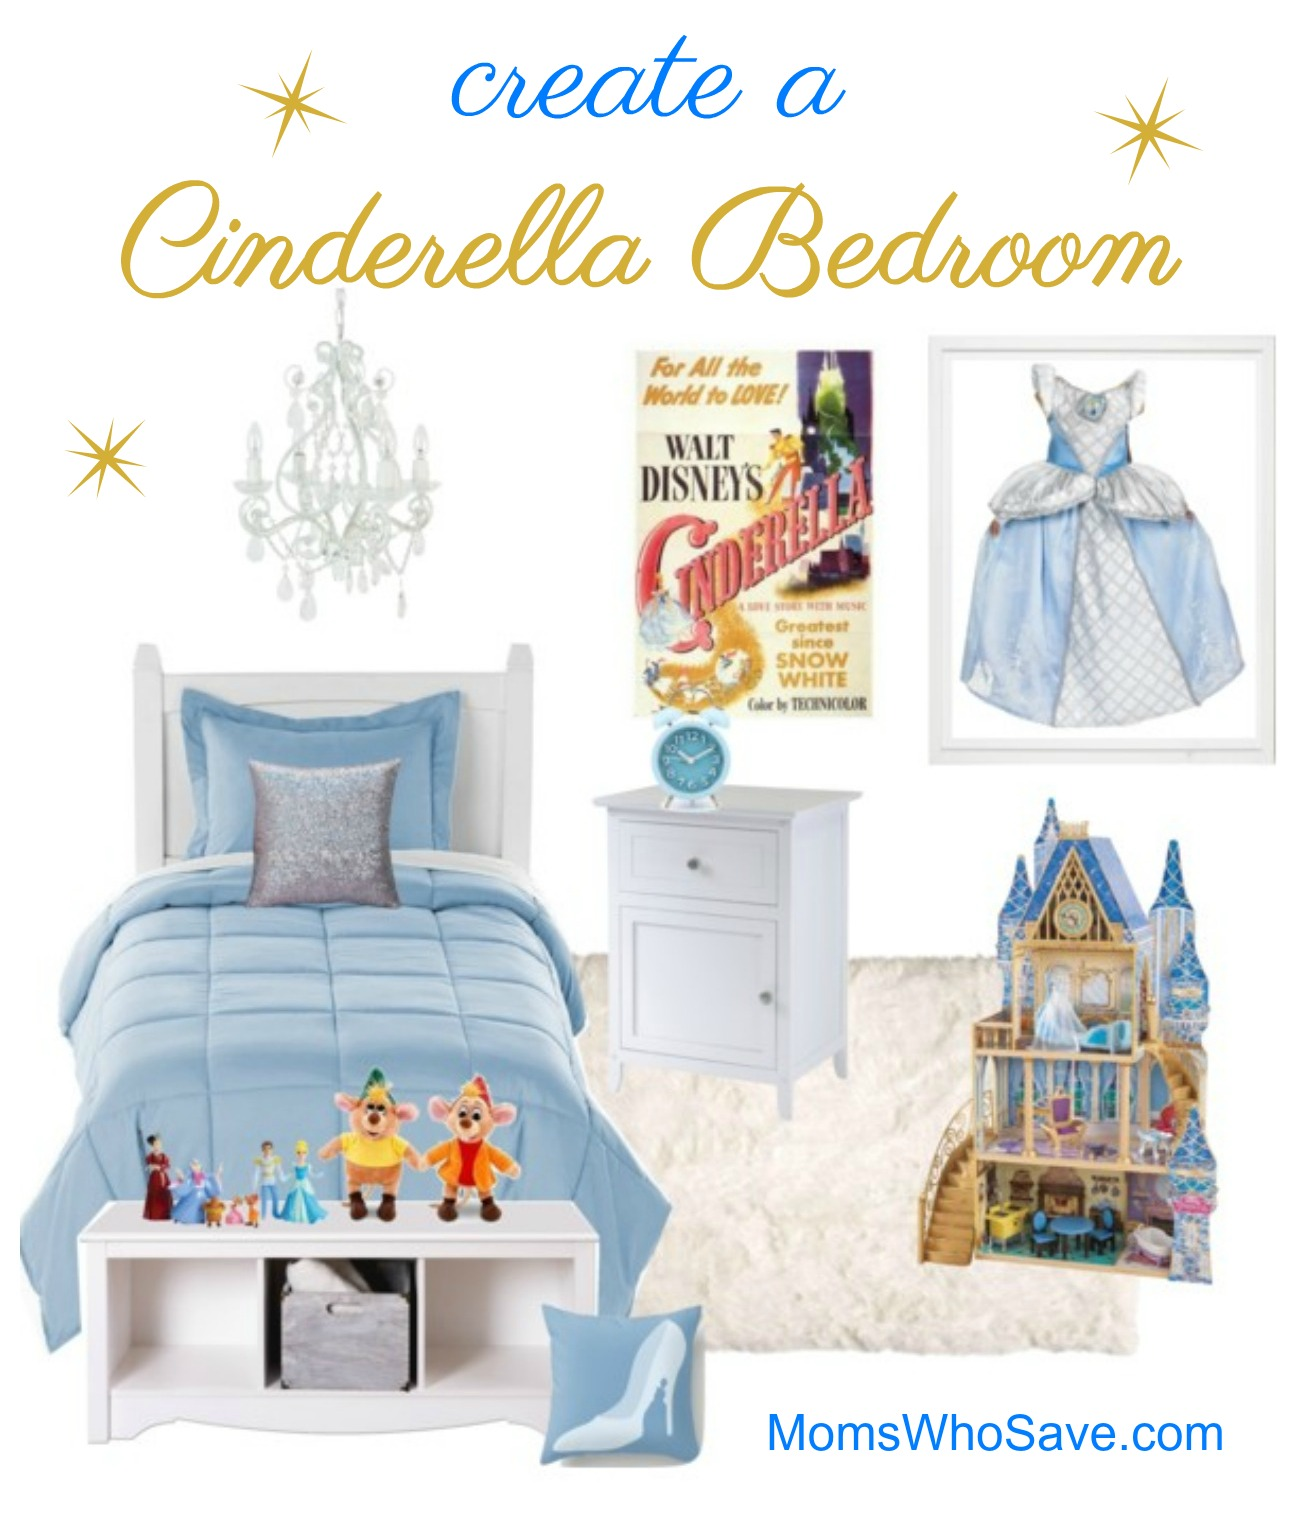 how to create Cinderella bedroom